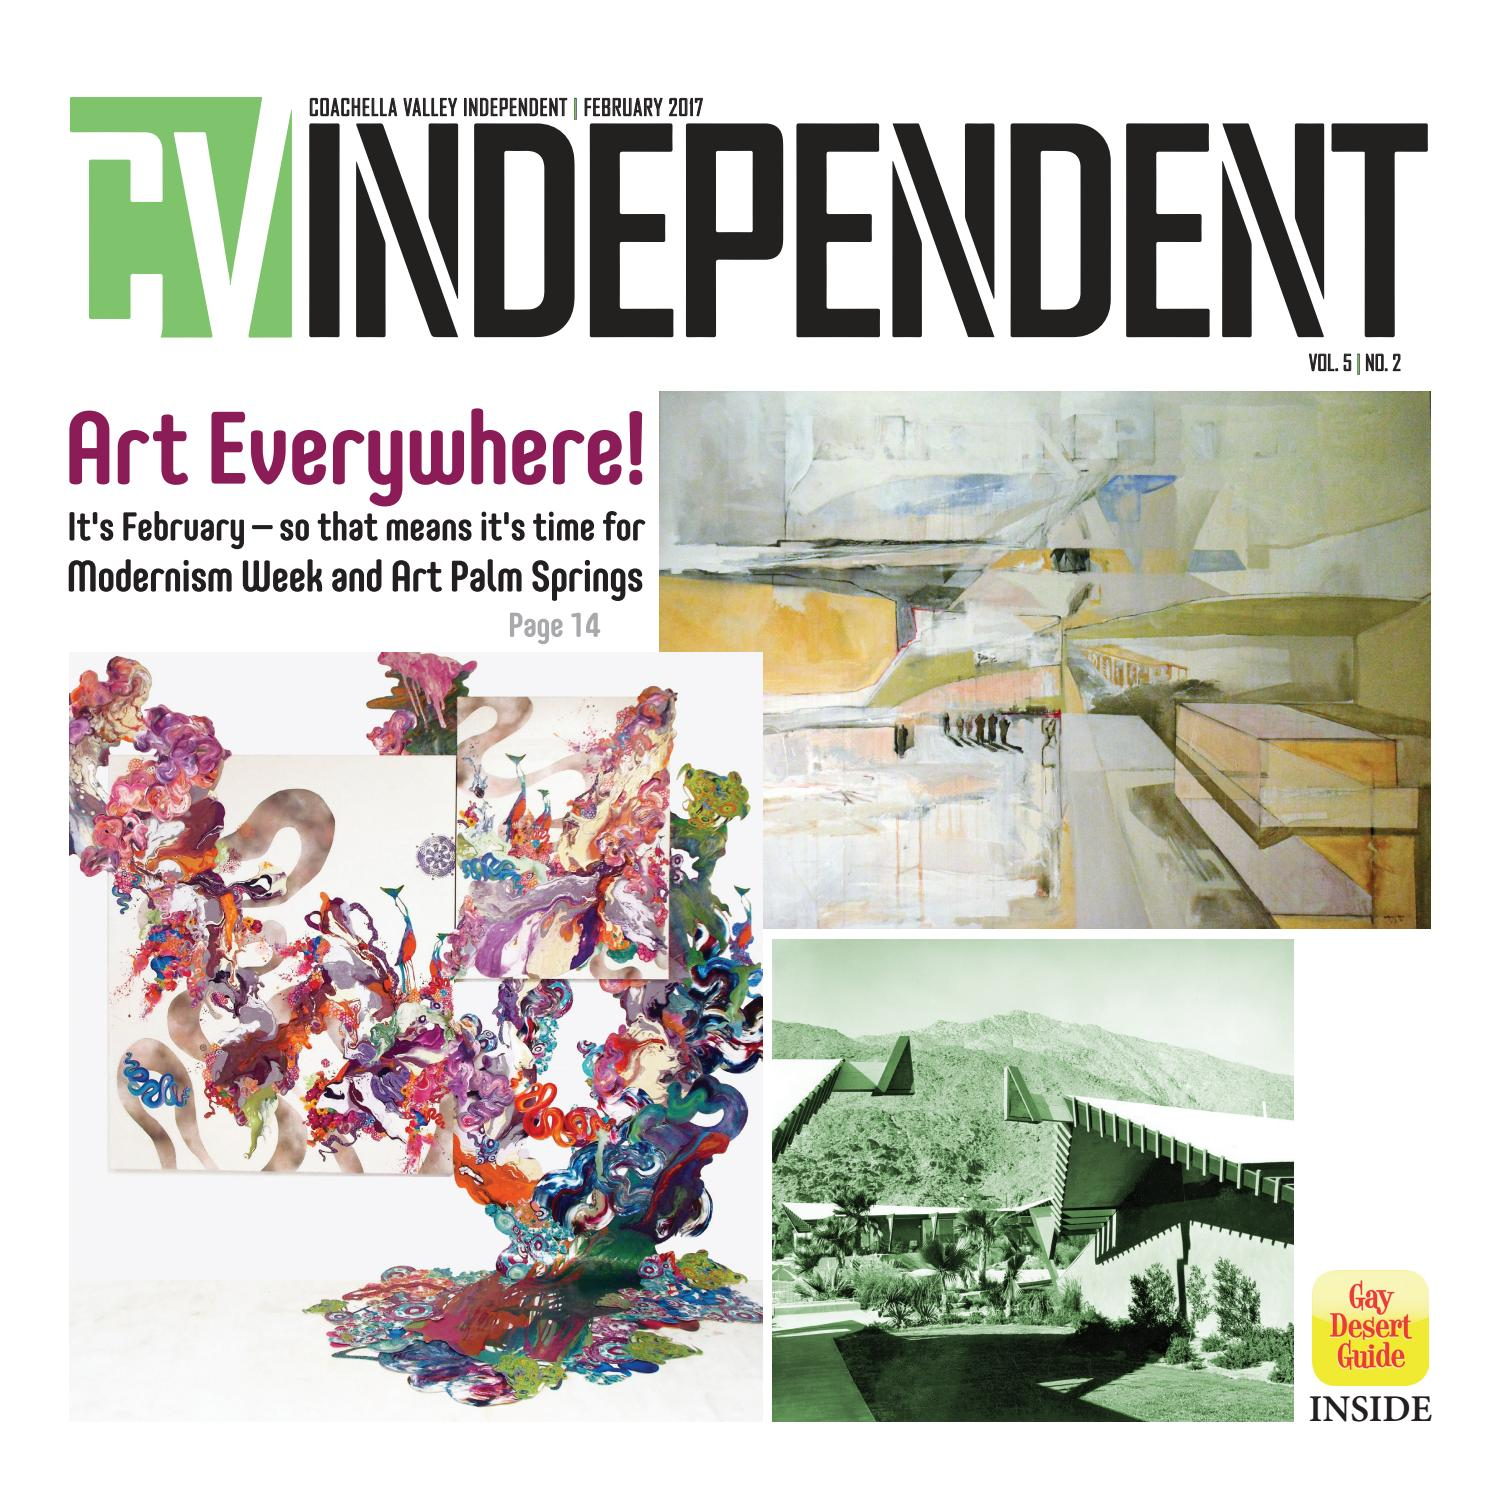 coachella valley independent february 2017 by coachella valley independent issuu issuu